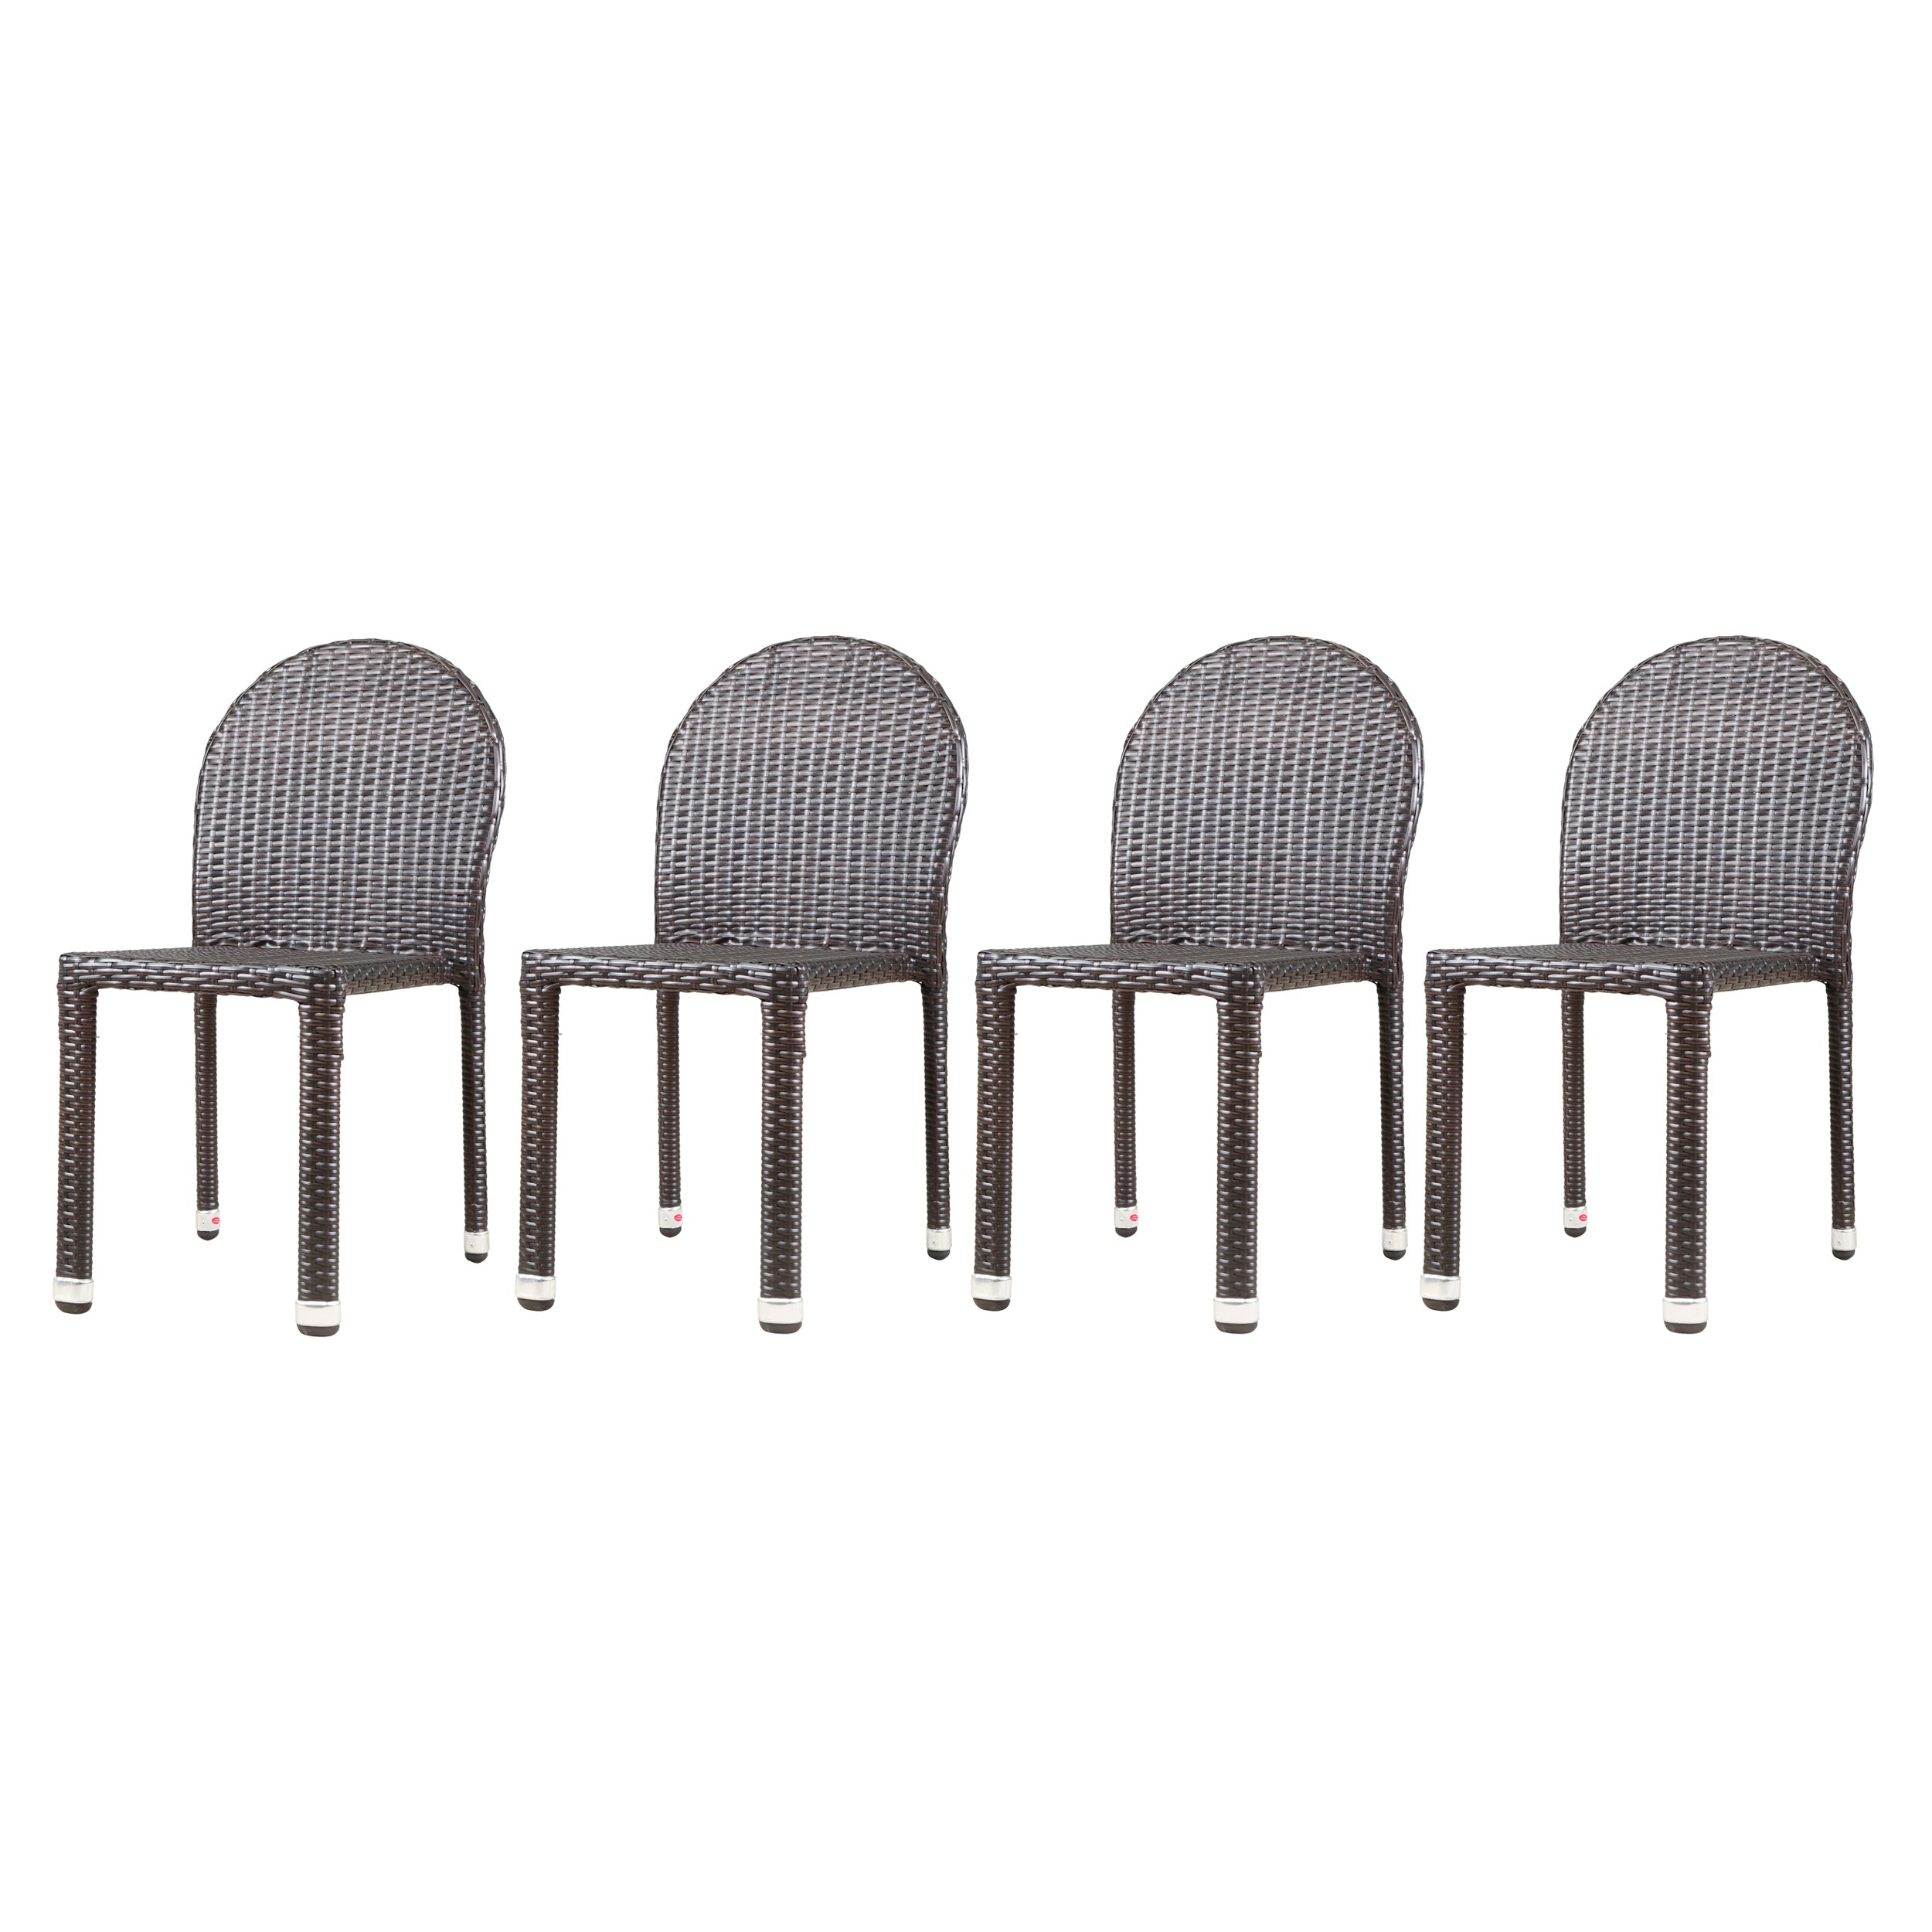 Amallie Outdoor Wicker Stacking Chairs with an Aluminum Frame Set of 4 Multi brown